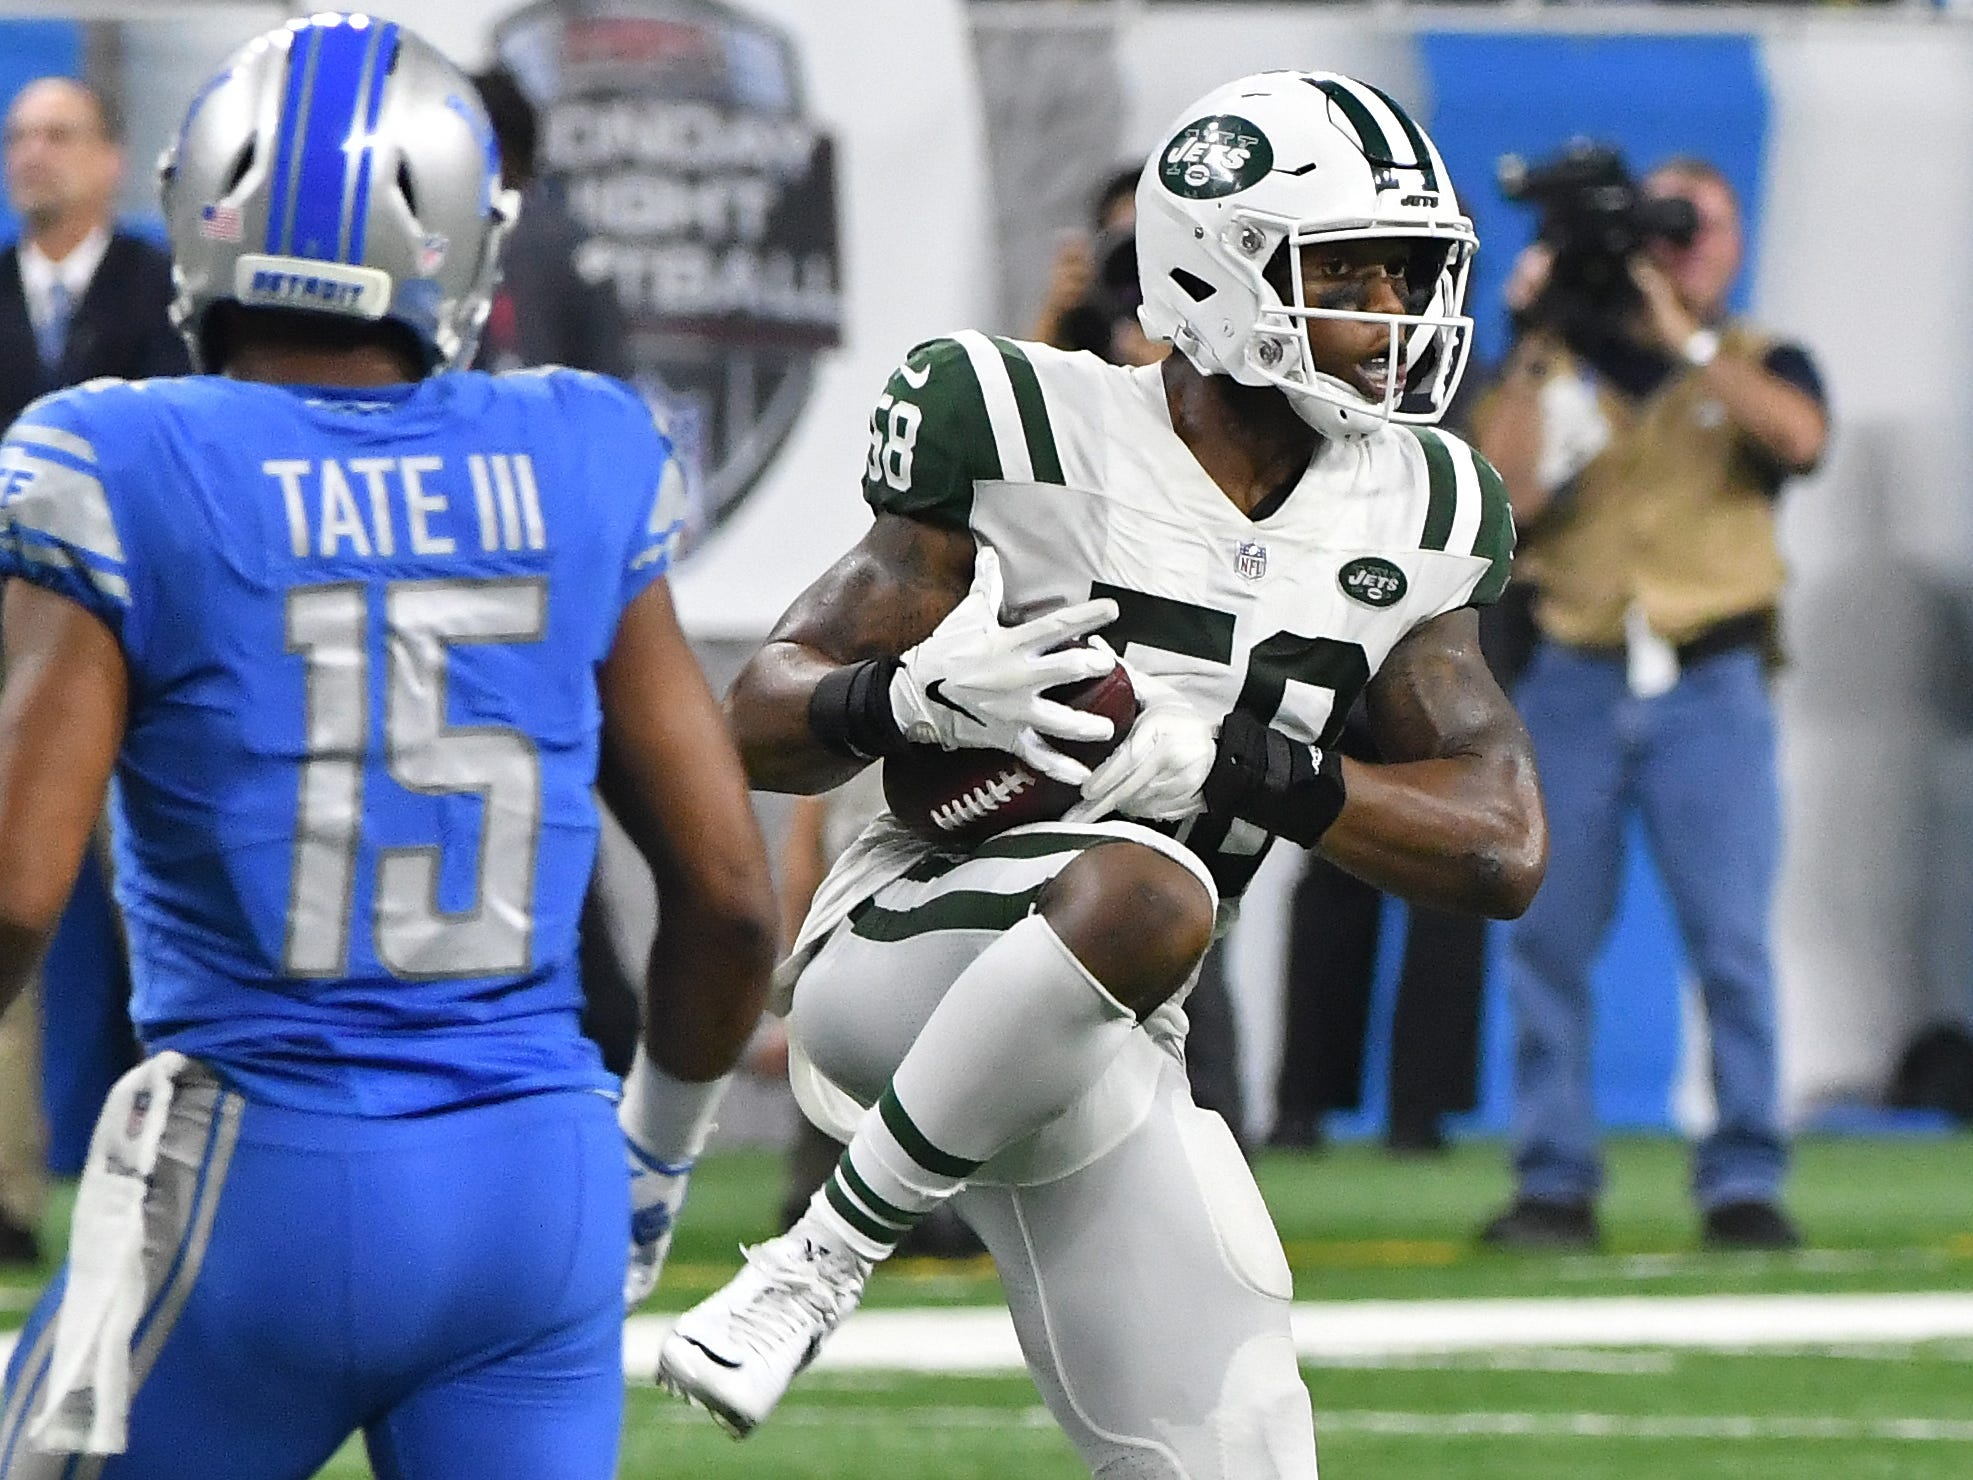 Jets' Darron Lee intercepts a pass by Lions quarterback Matthew Stafford in the third quarter.